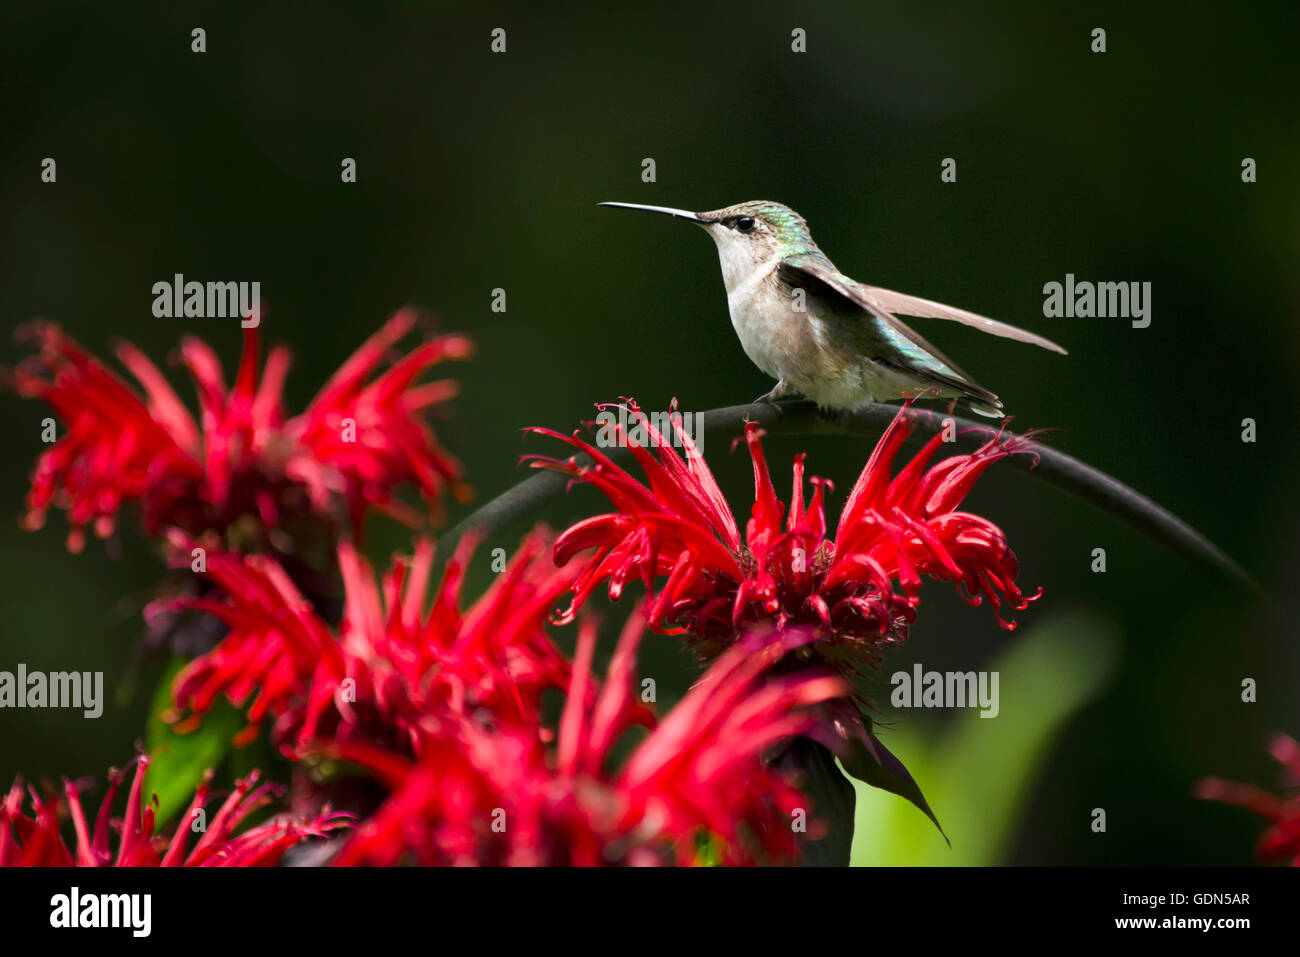 Cute hummingbird perched over red flowers in summer garden habitat. - Stock Image